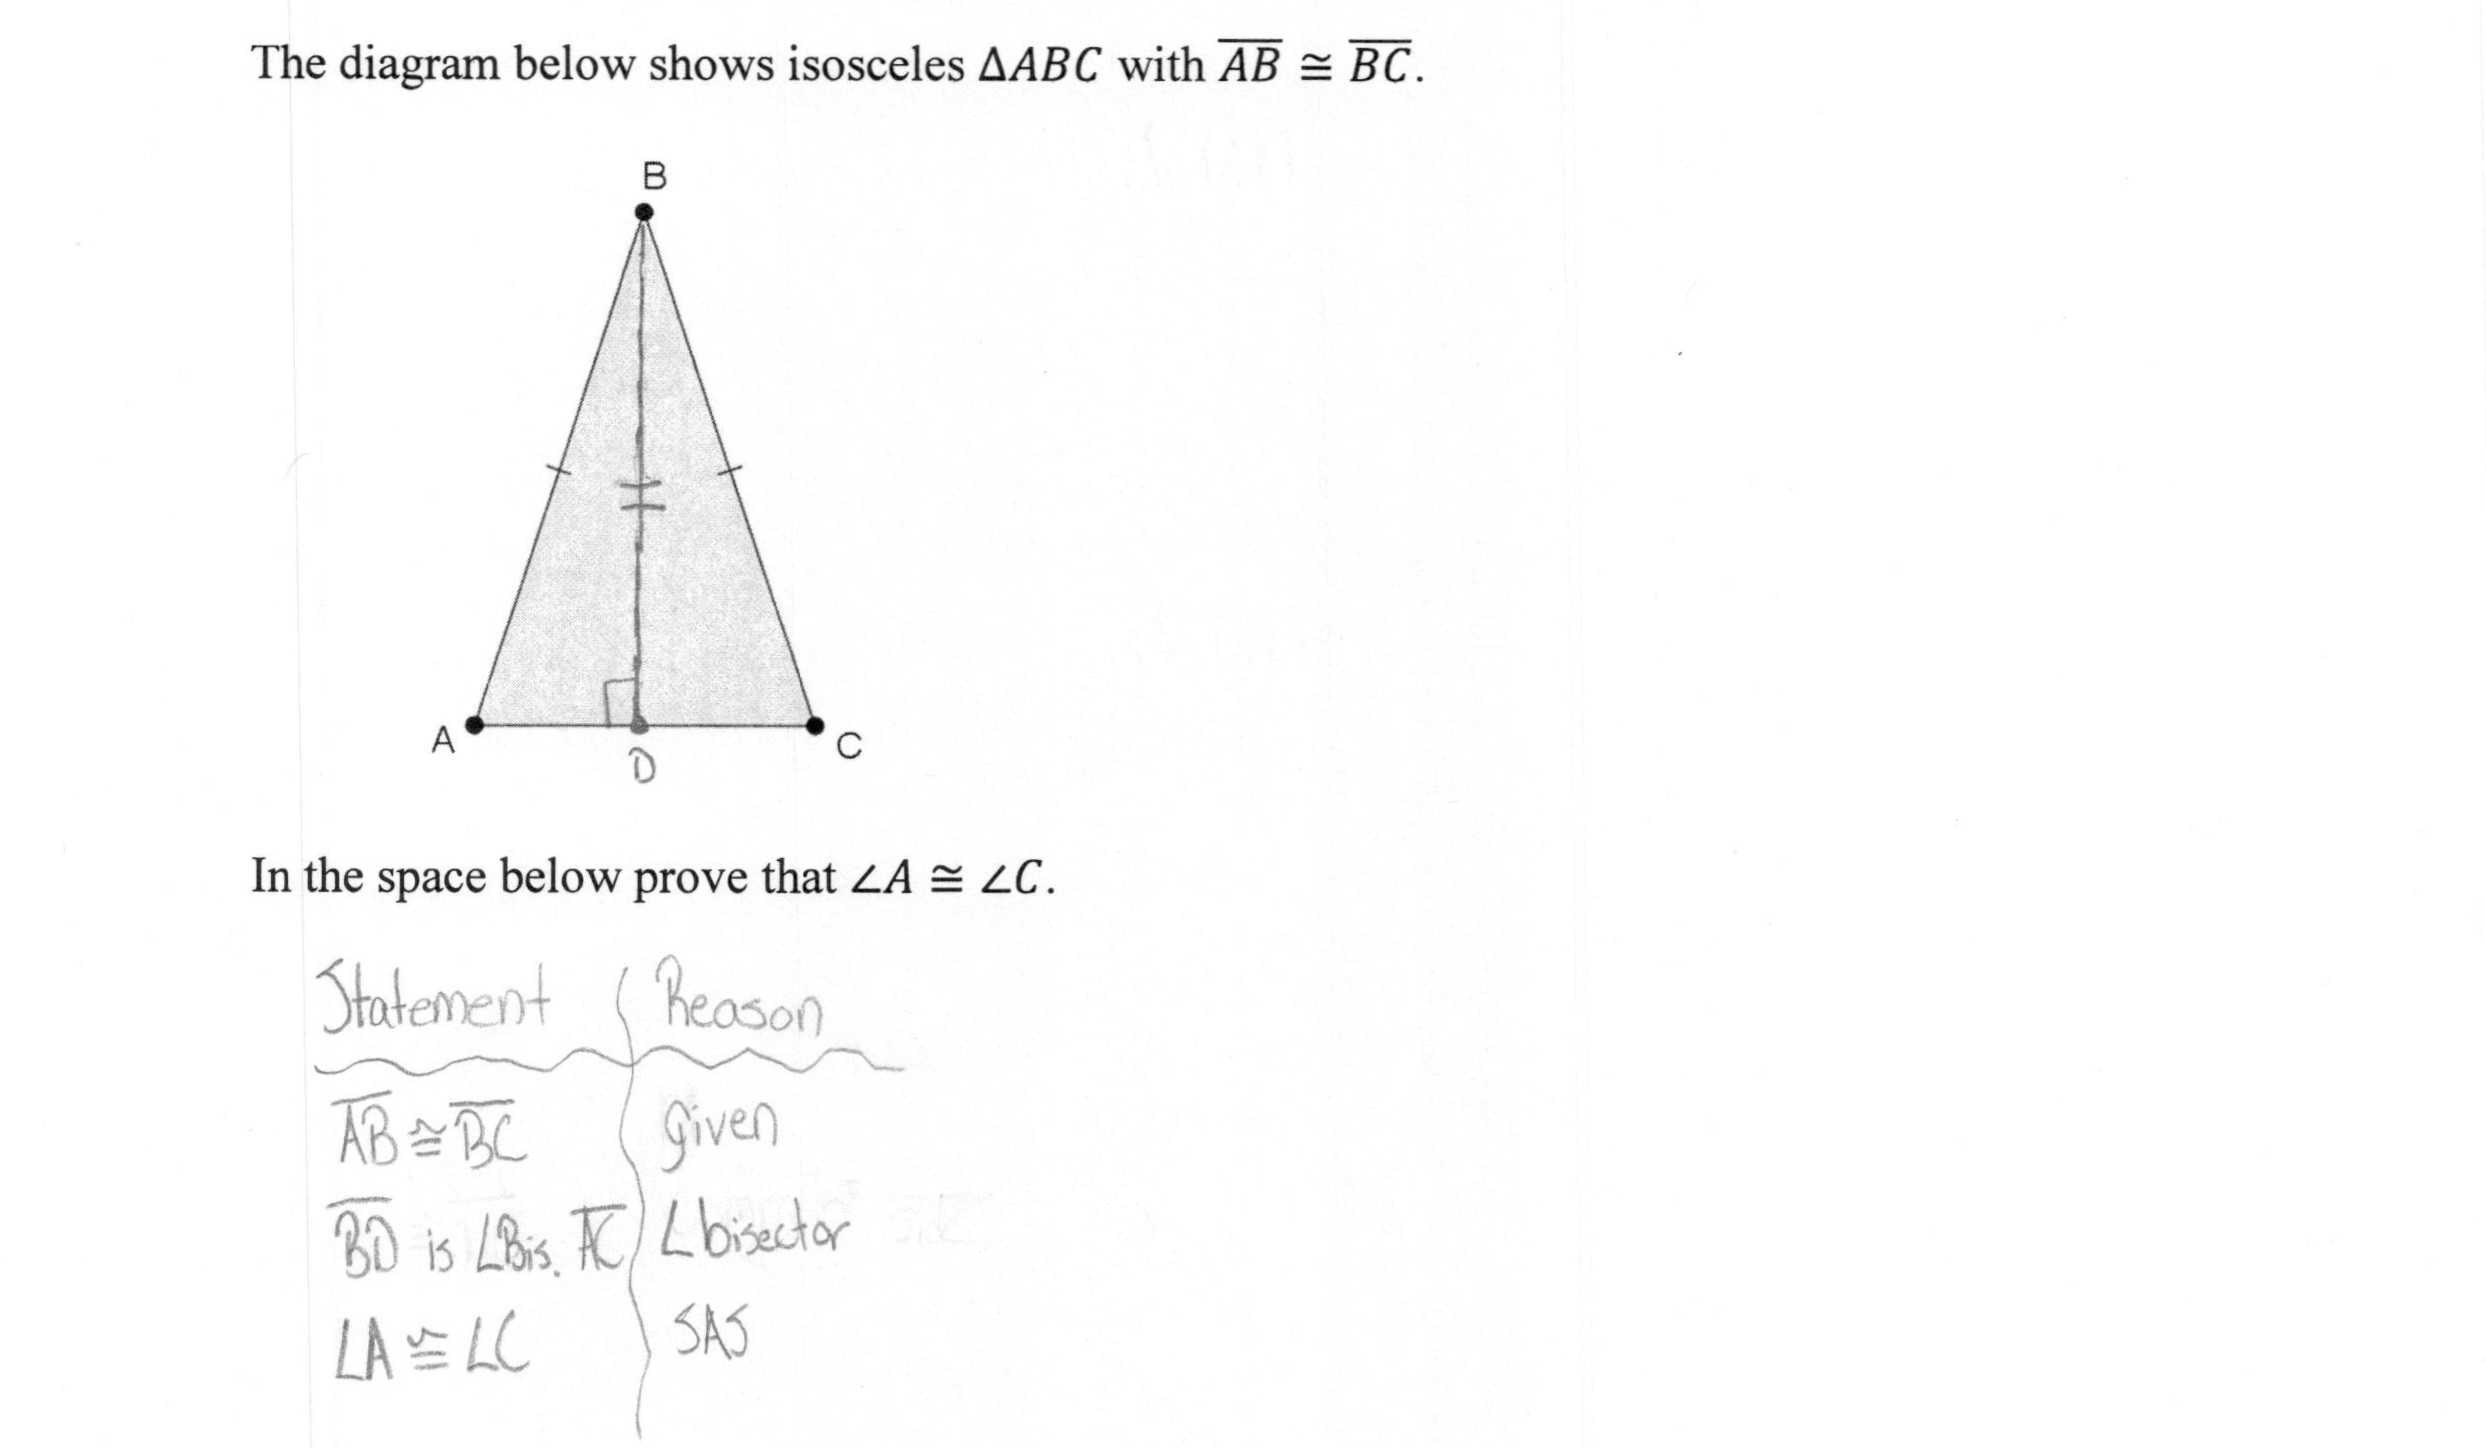 Gattaca Worksheet Biology Answers Along with Triangle Congruence Worksheet Pdf Awesome Image Result for